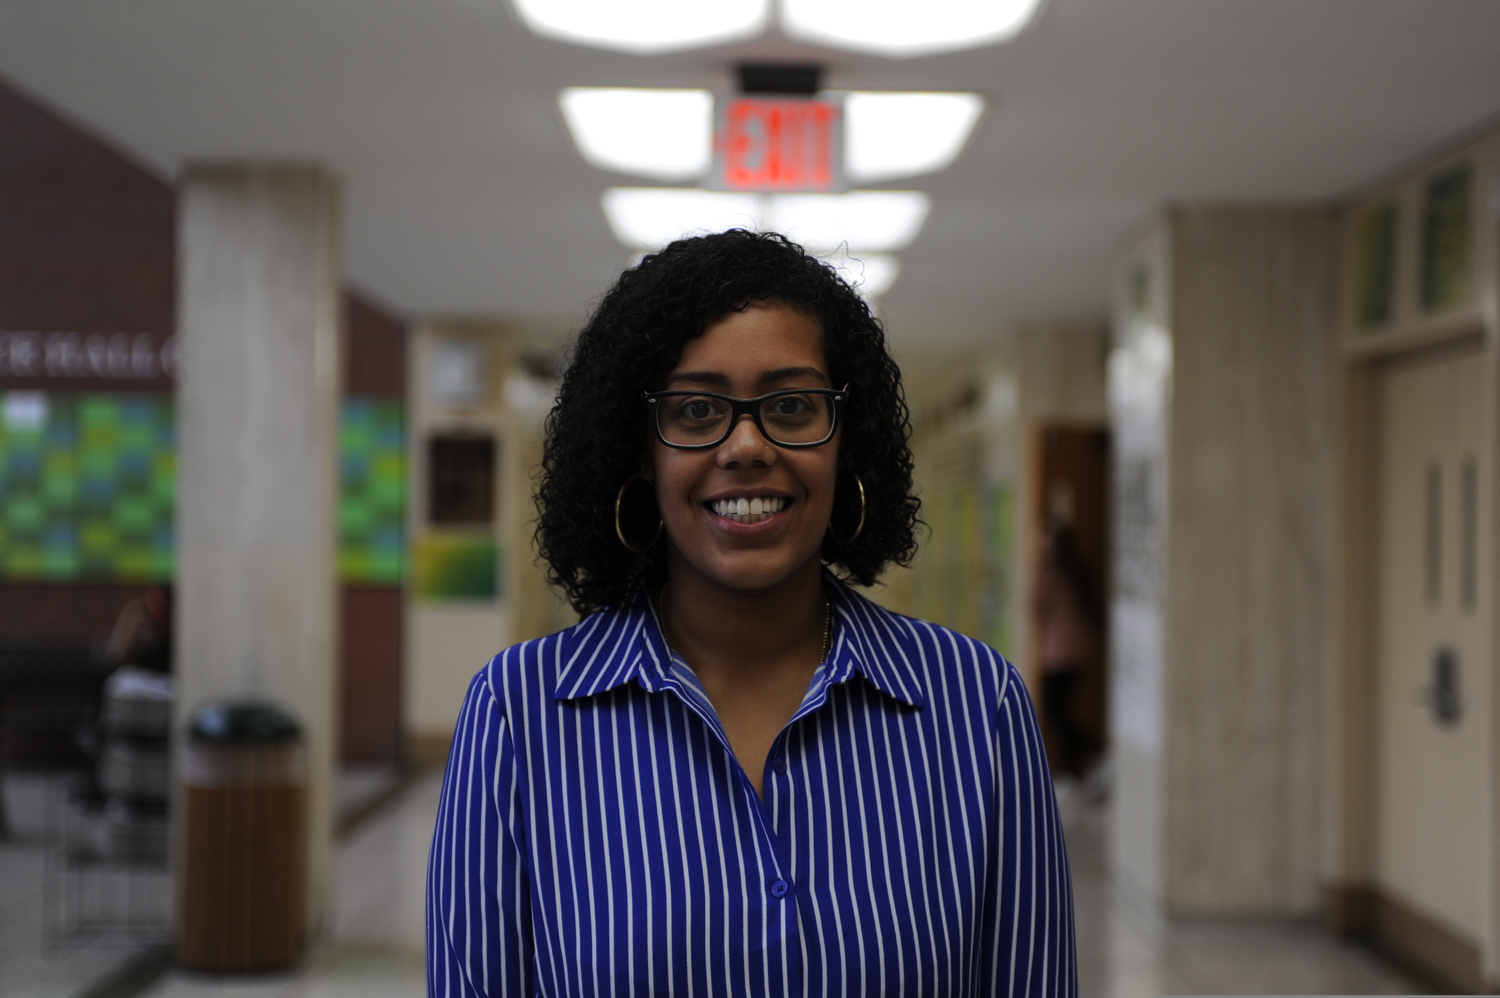 Ms. Wilhelm, a new English teacher at Bronx Science, speaks on her work /life balance between being a high school teacher and a graduate student.